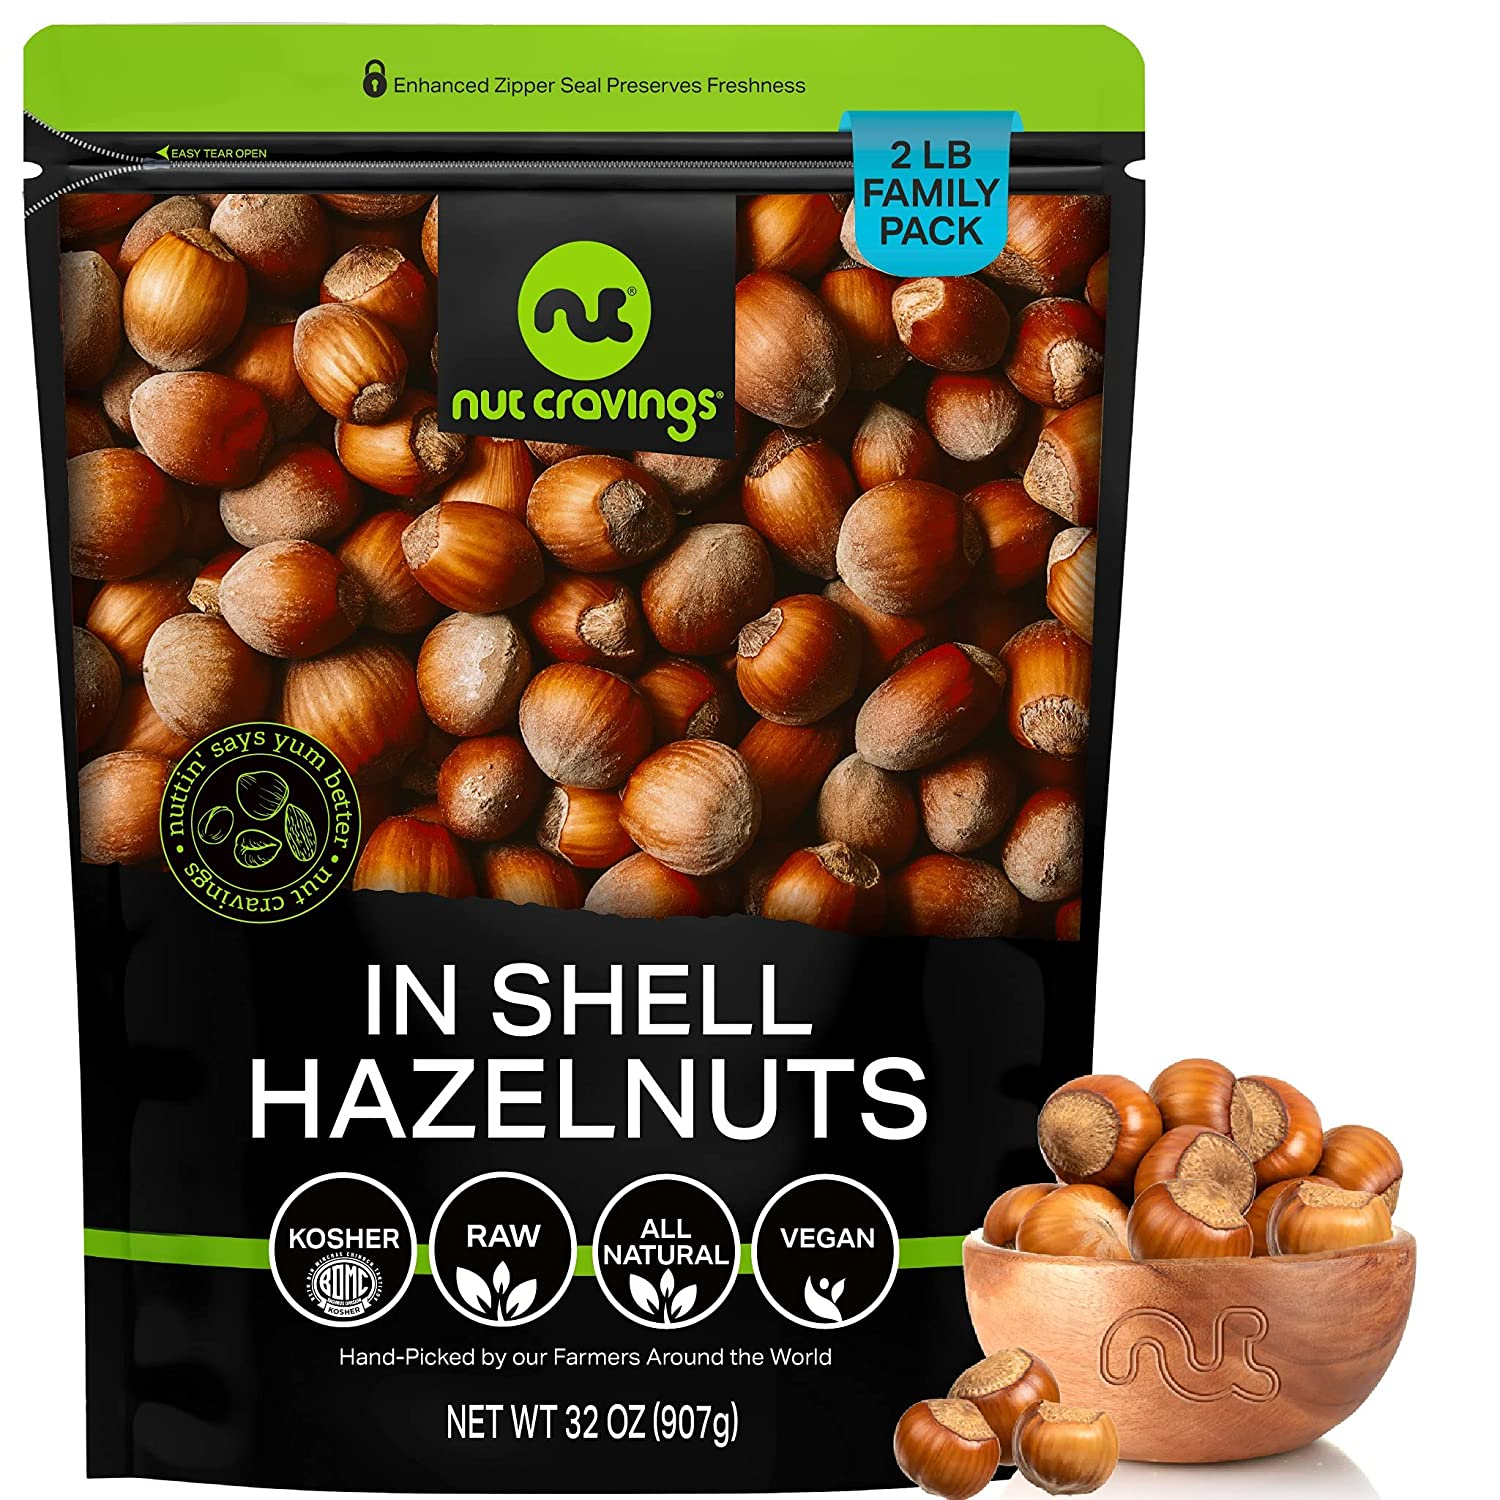 Raw Hazelnuts Filberts with Skin In 32oz - Atlanta Mall Packed 2 Shell LB Sale SALE% OFF